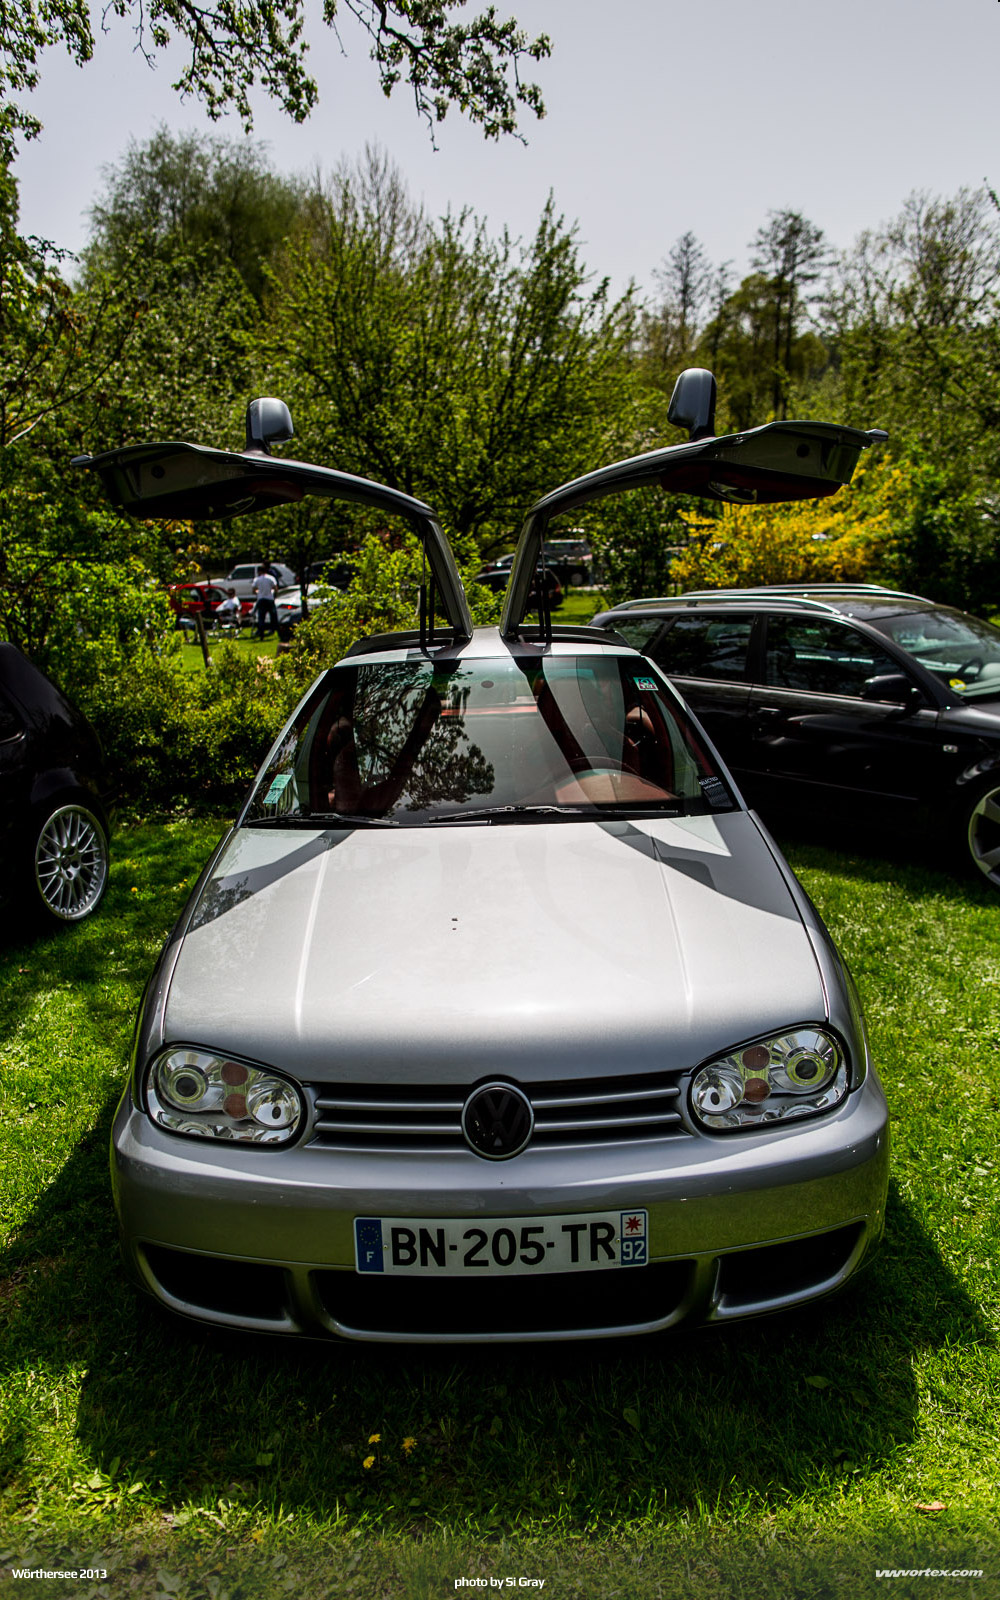 worthersee-2013-gallery-si-gray-168